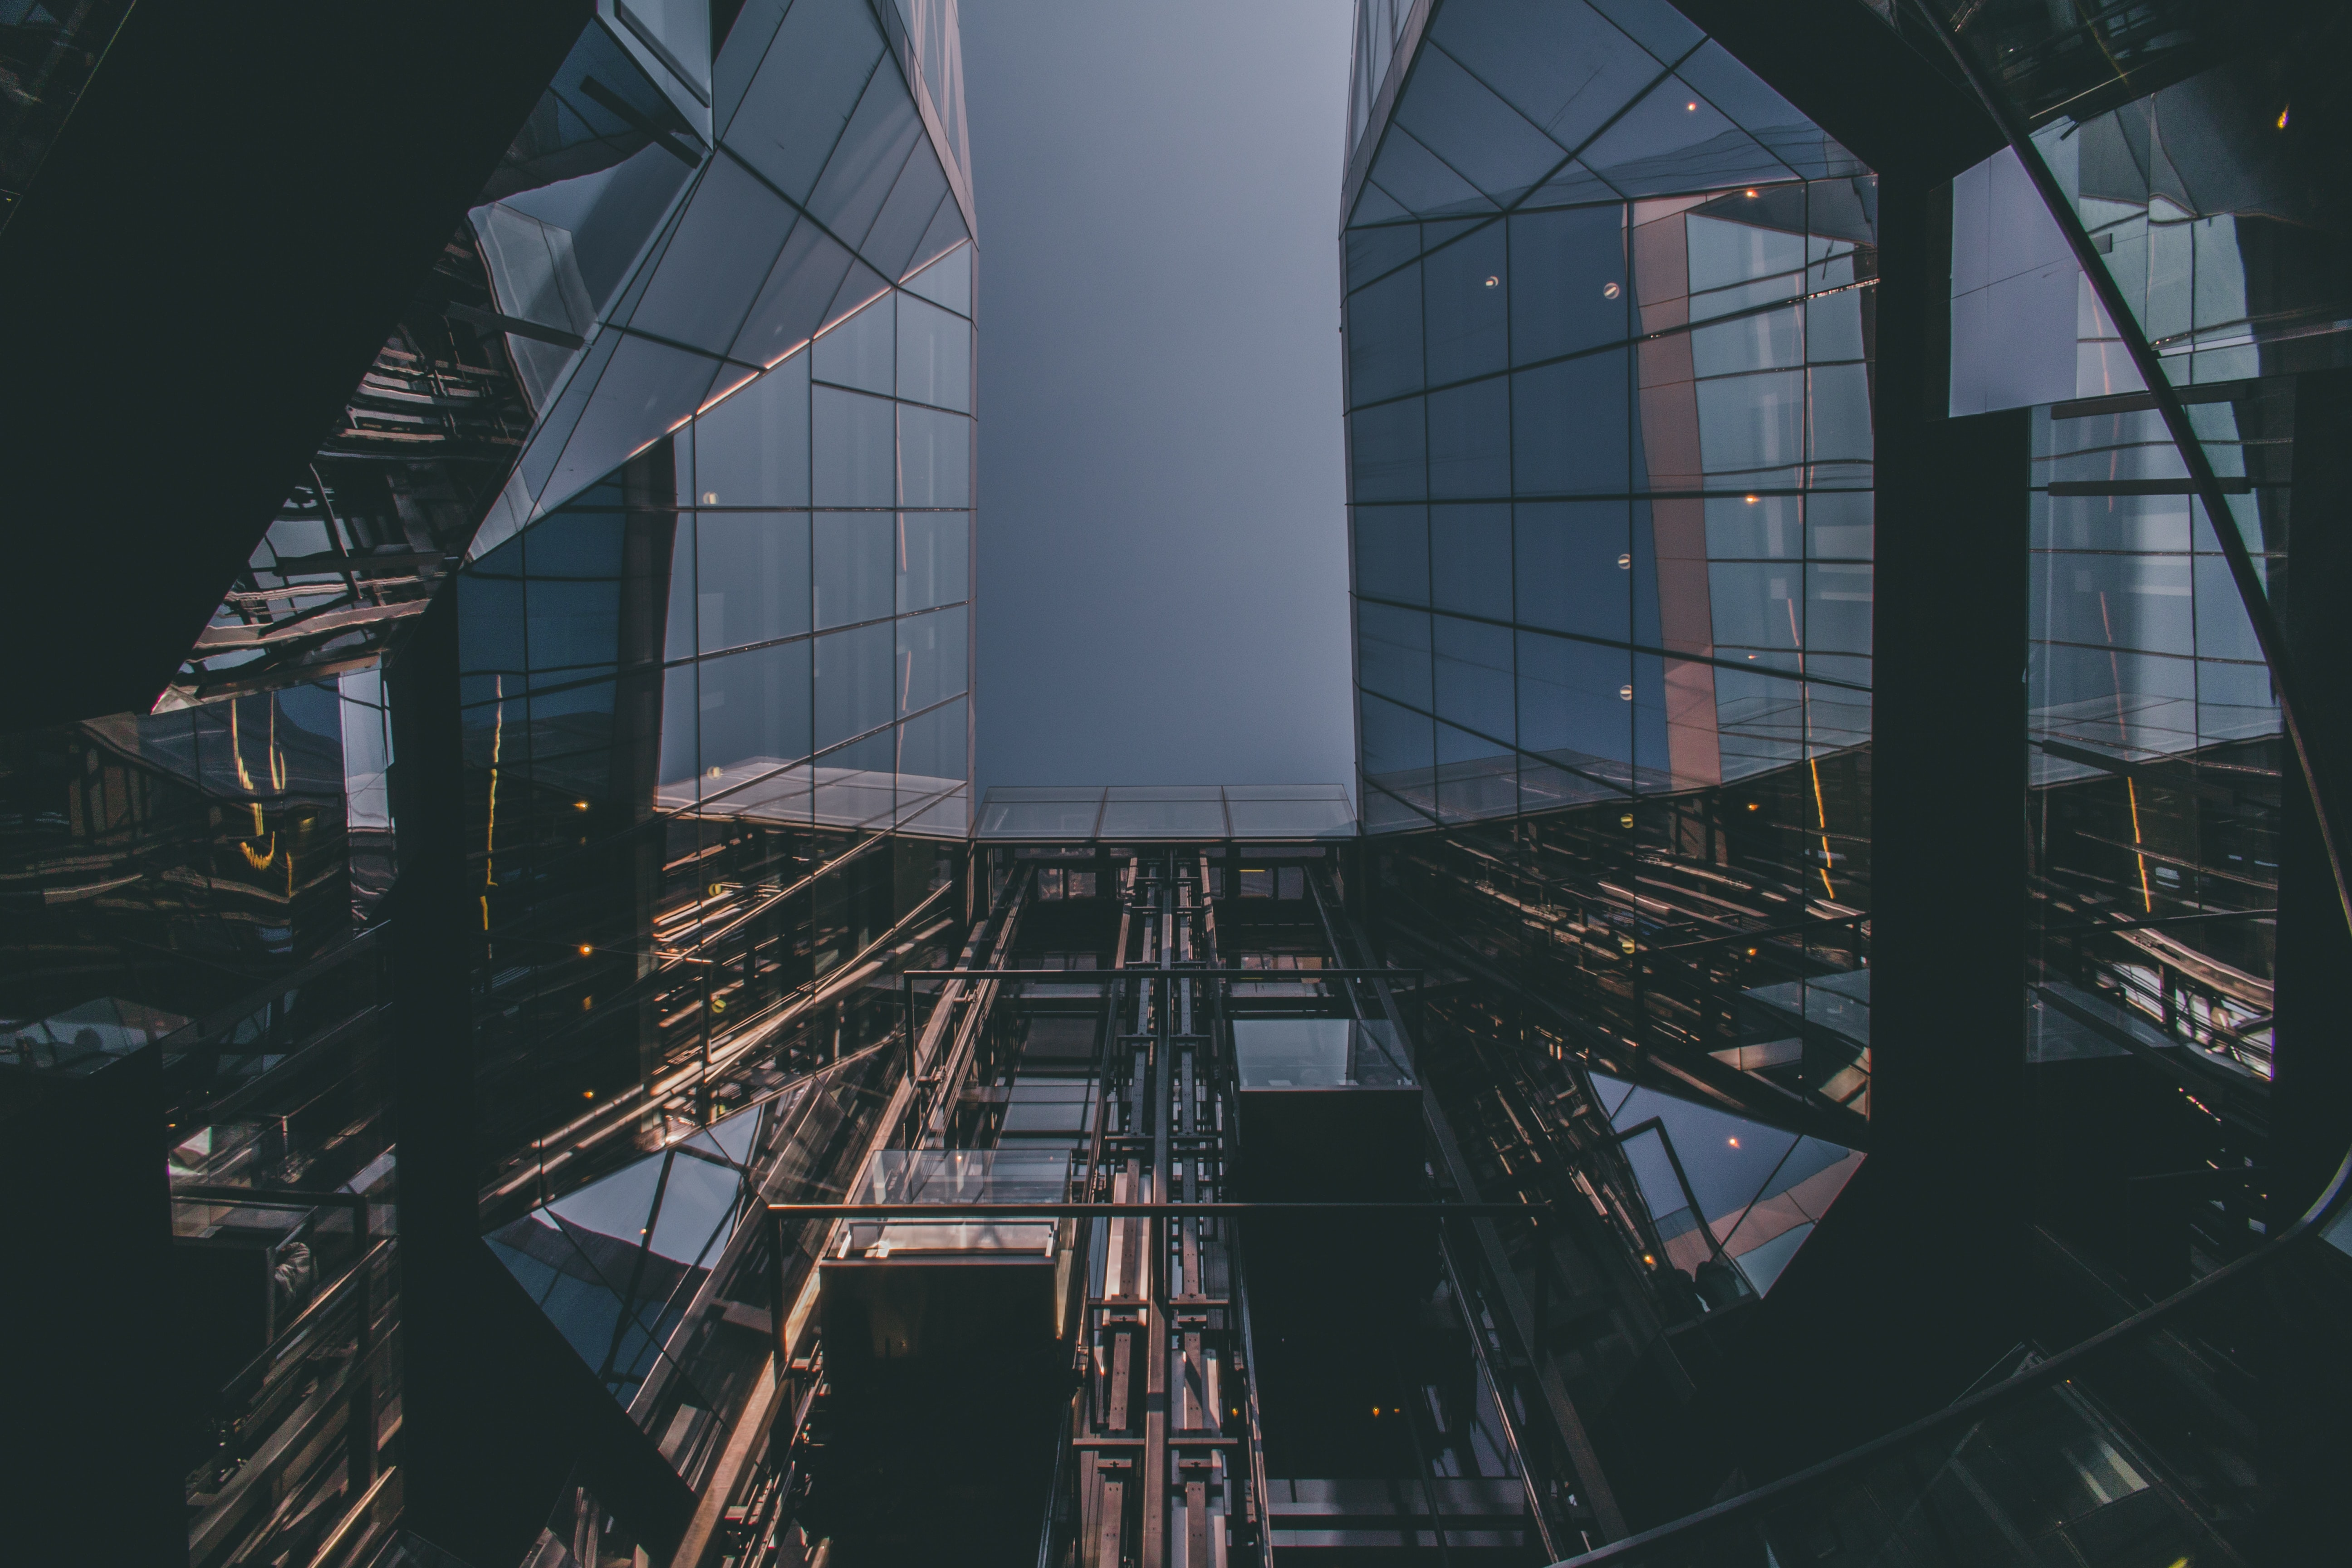 low angle photography of mirrored building